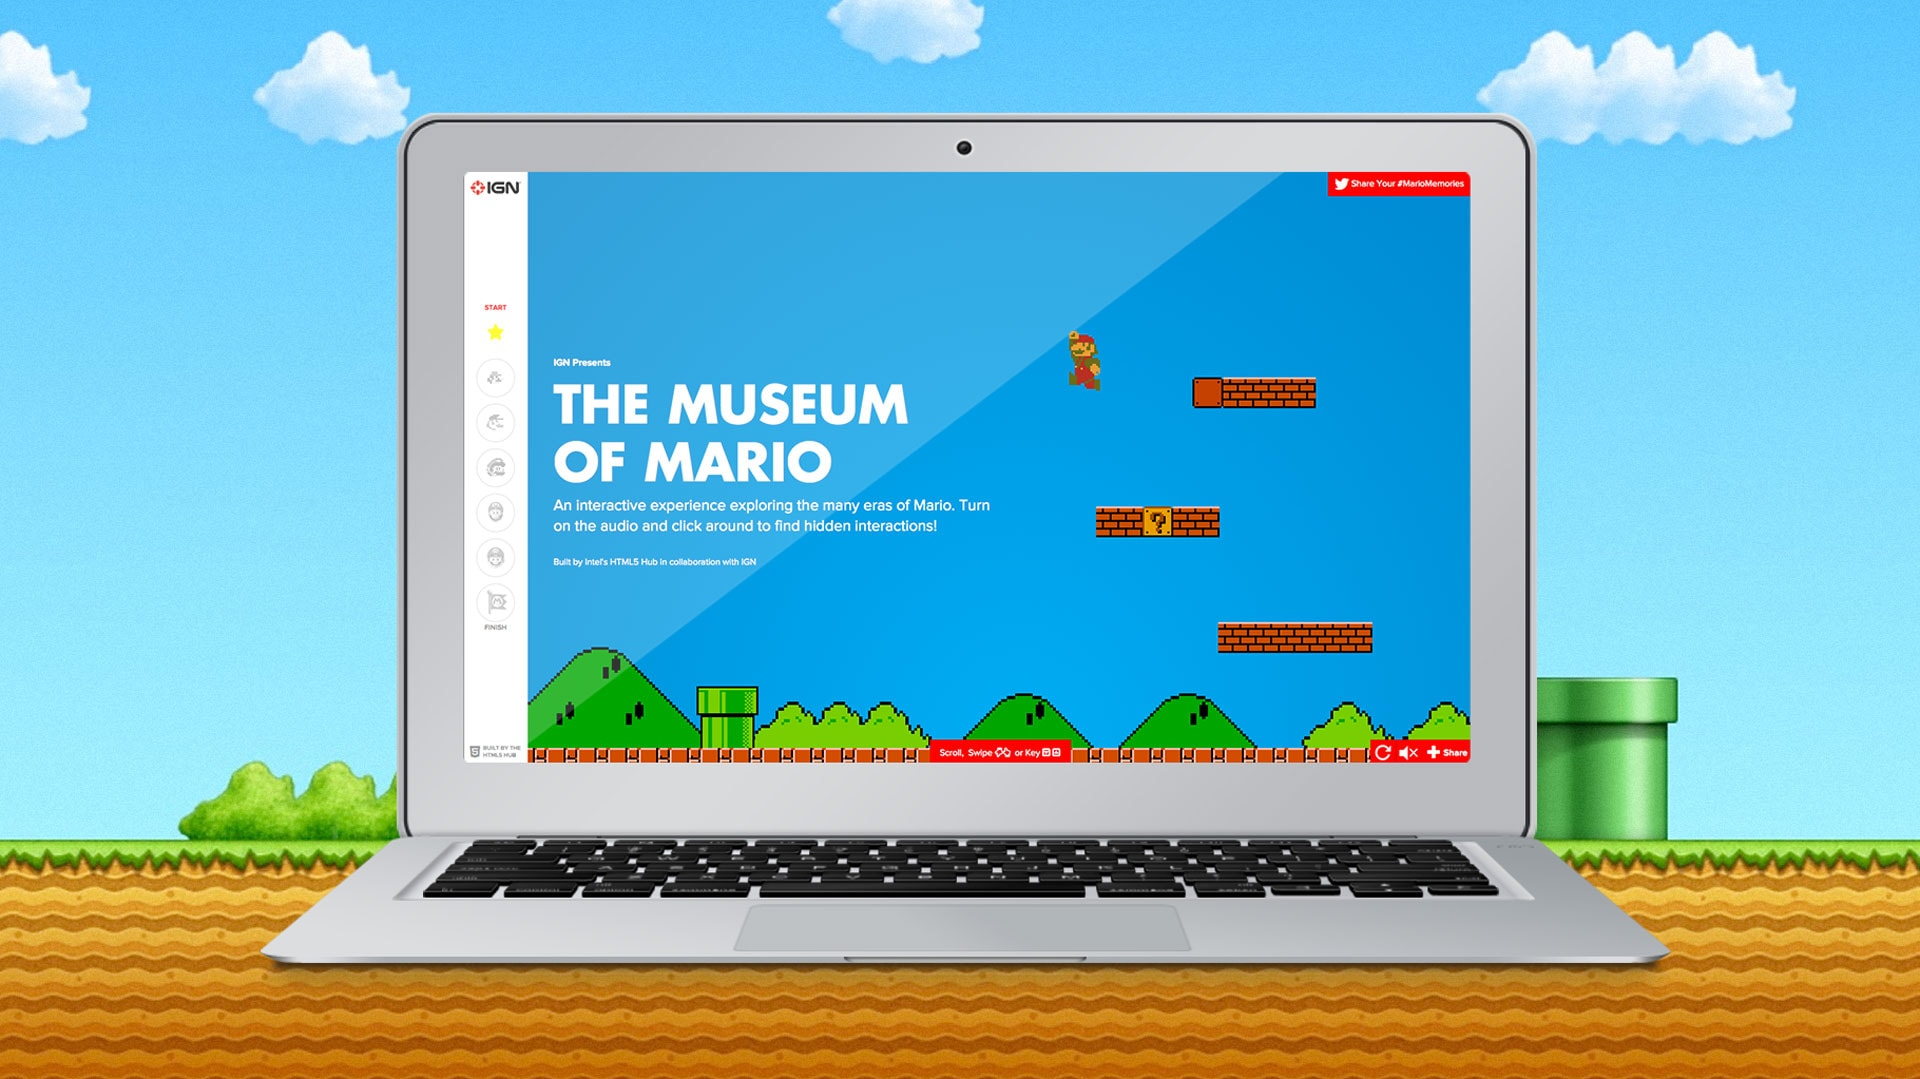 Graphic of a laptop showing the Museum of Mario home page